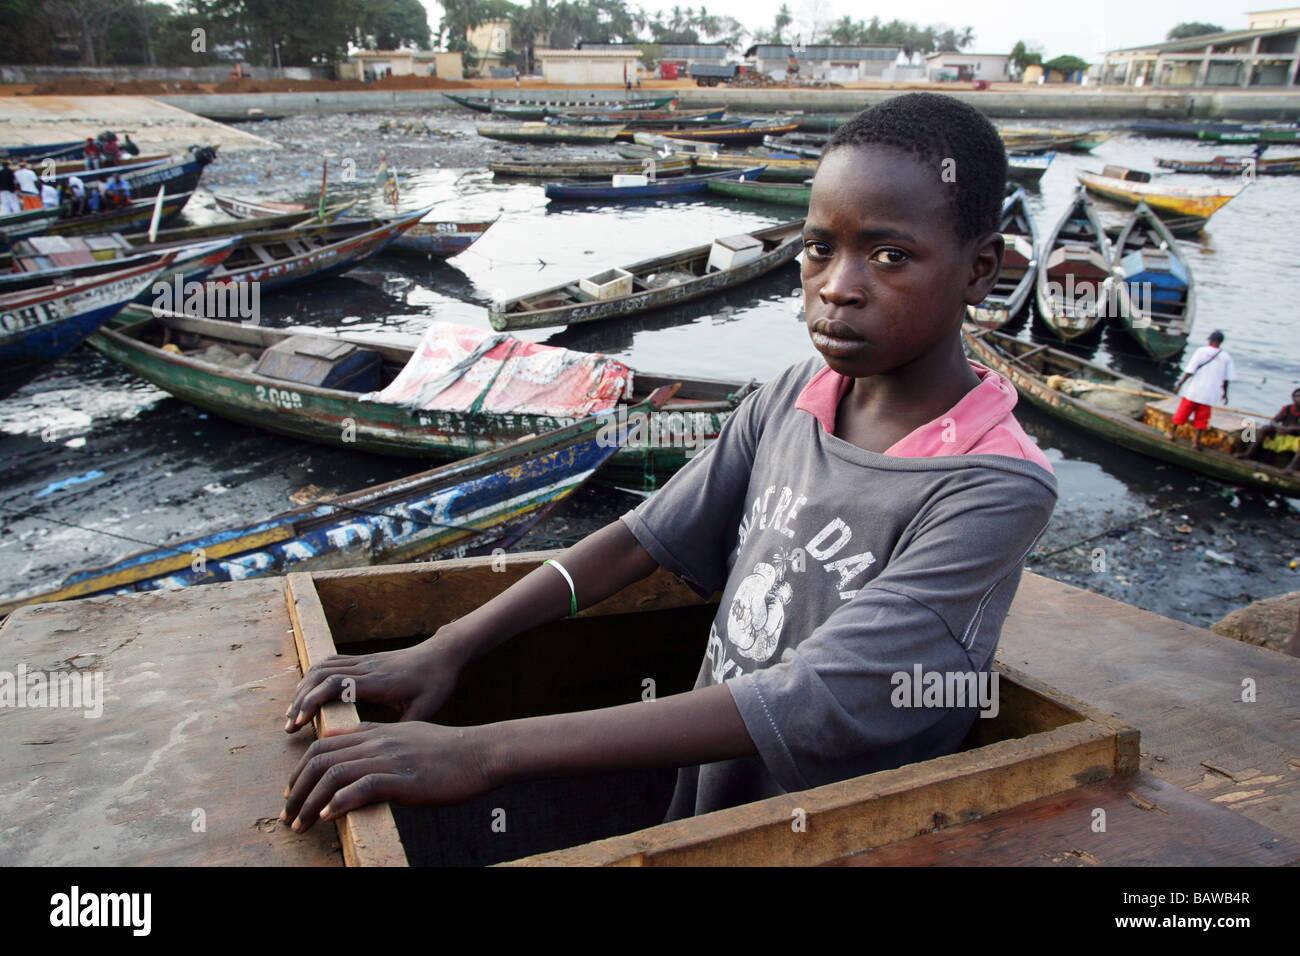 Guinea, Conakry: streetkid in his sleepingplace in a wooden box at the fishingport of Conacry - Stock Image